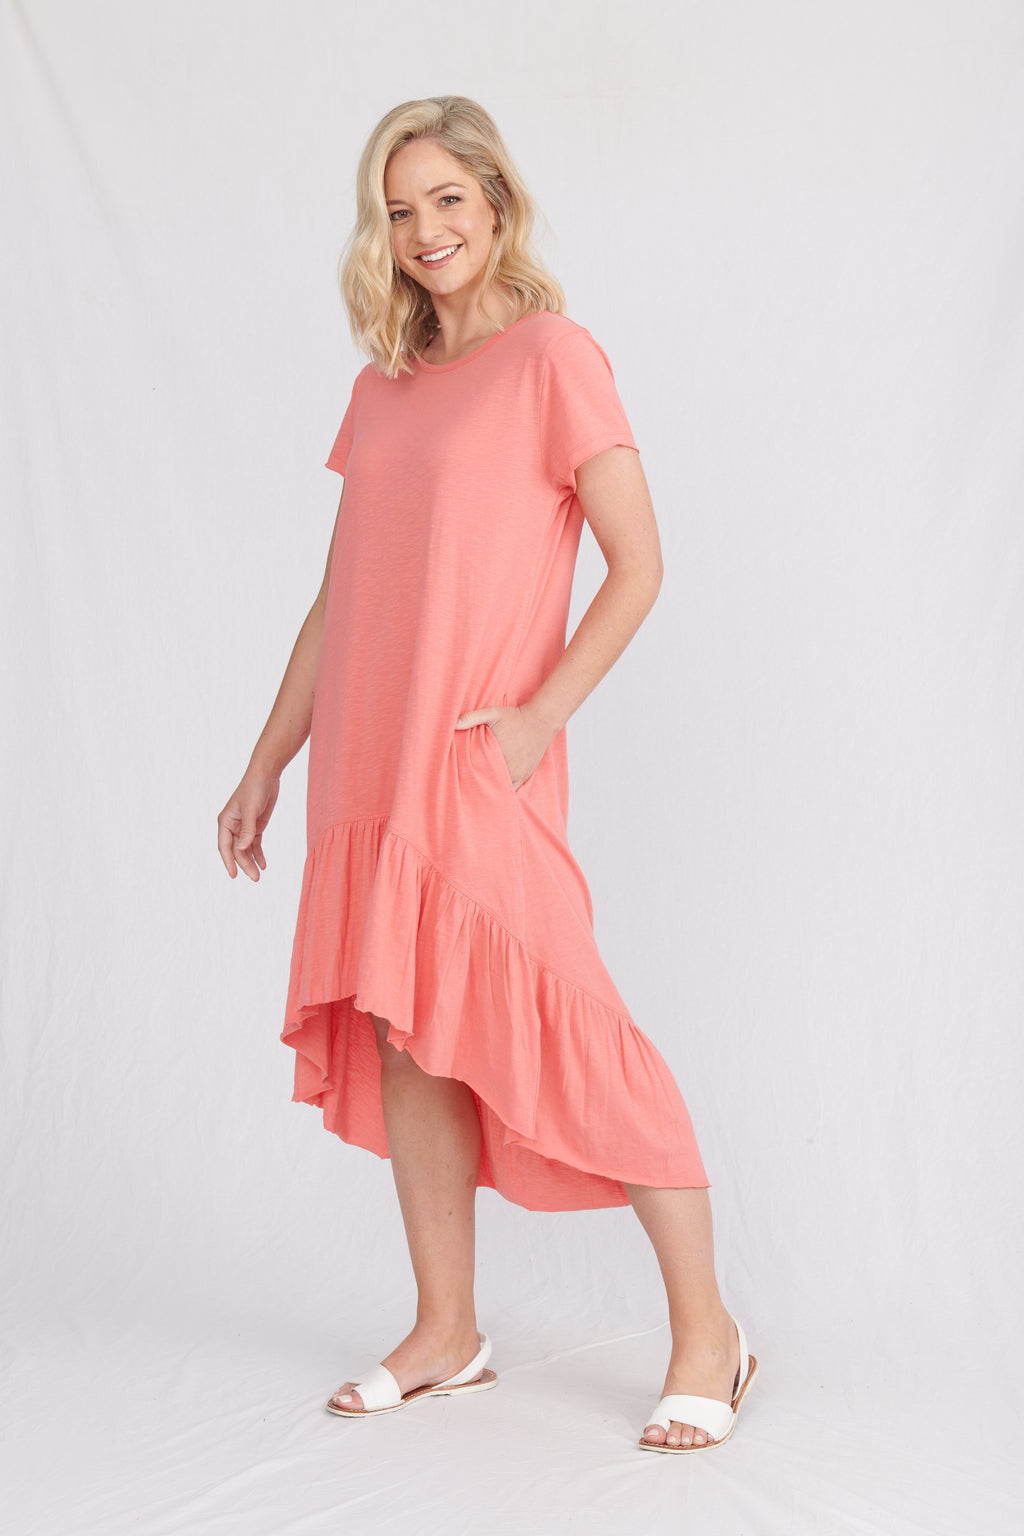 Lulu Organics Cotton Essentials - Somerville Dress Coral Flame